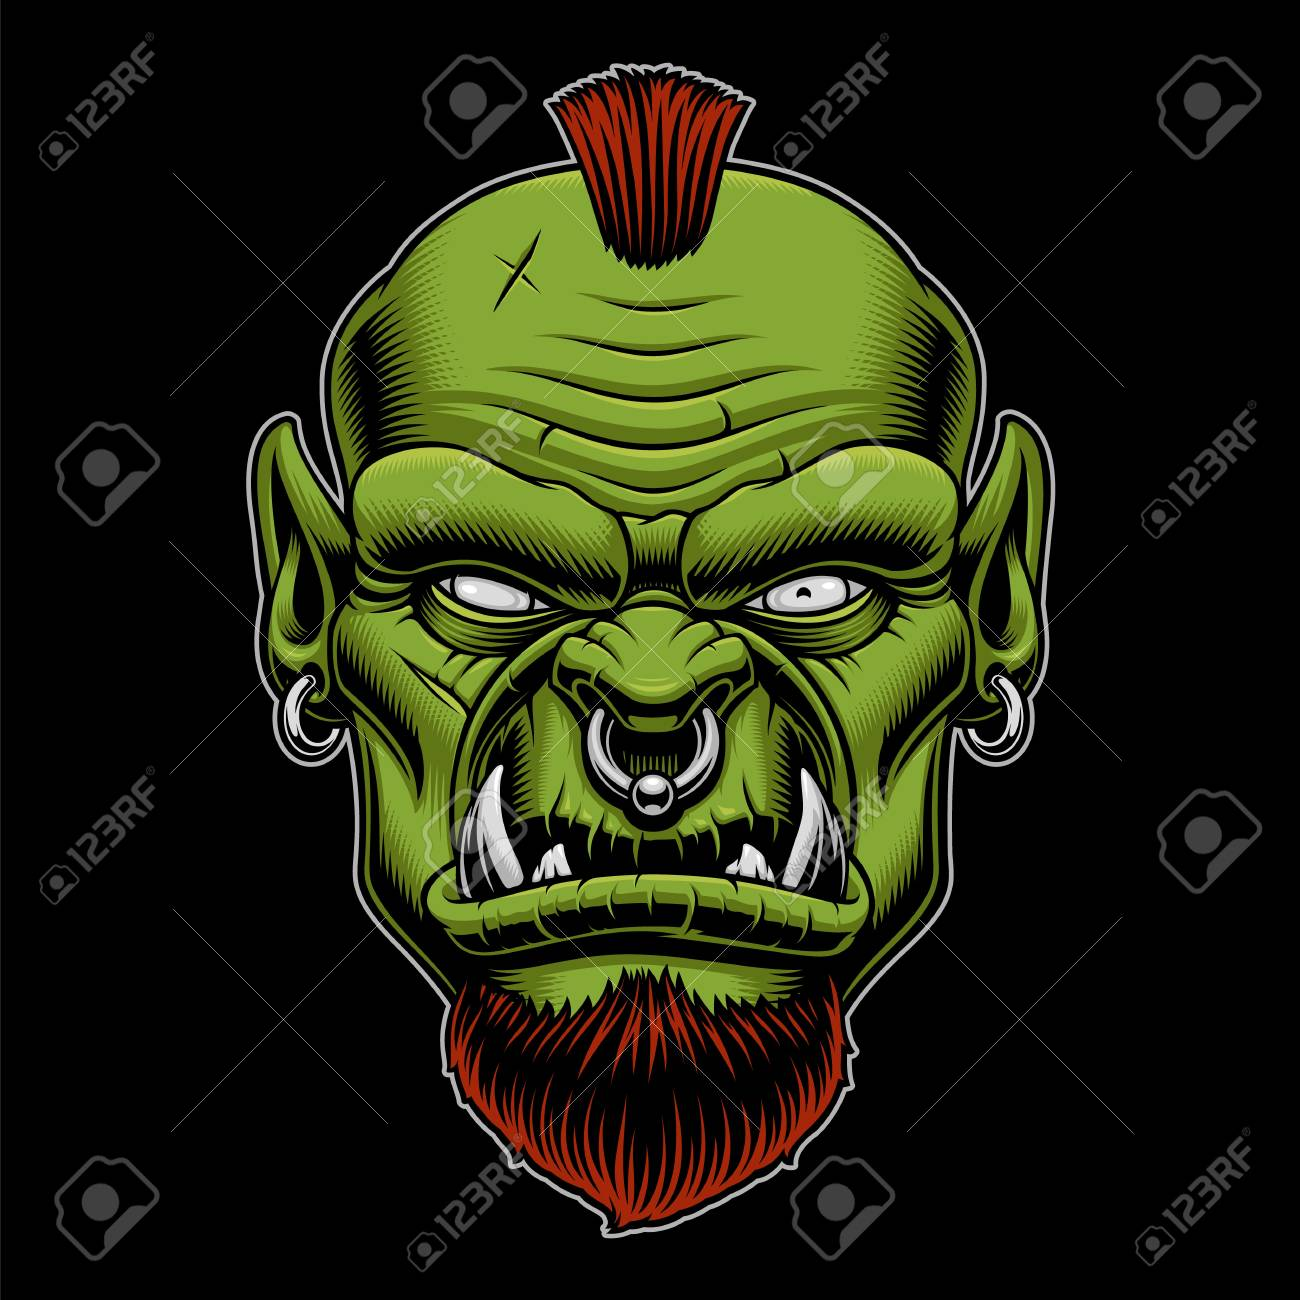 Vector Illustration Of An Angry Orc On The Dark Background 1300x1300